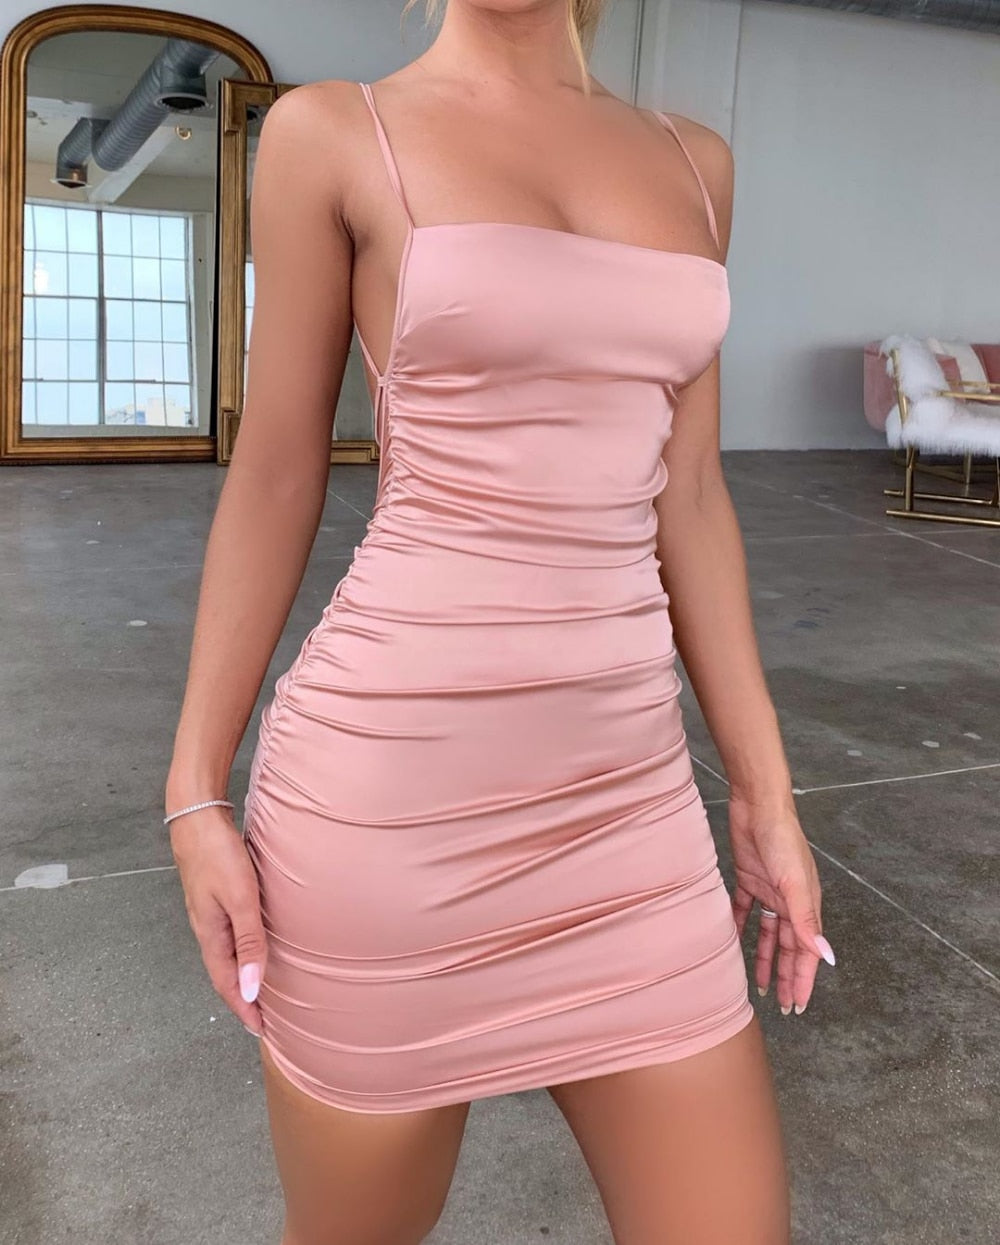 2020 summer Strap Mini Satin Dress Women Sexy Backless Cross Bandage Bodycon Party Dress Pleated Stretch Short Club Dress